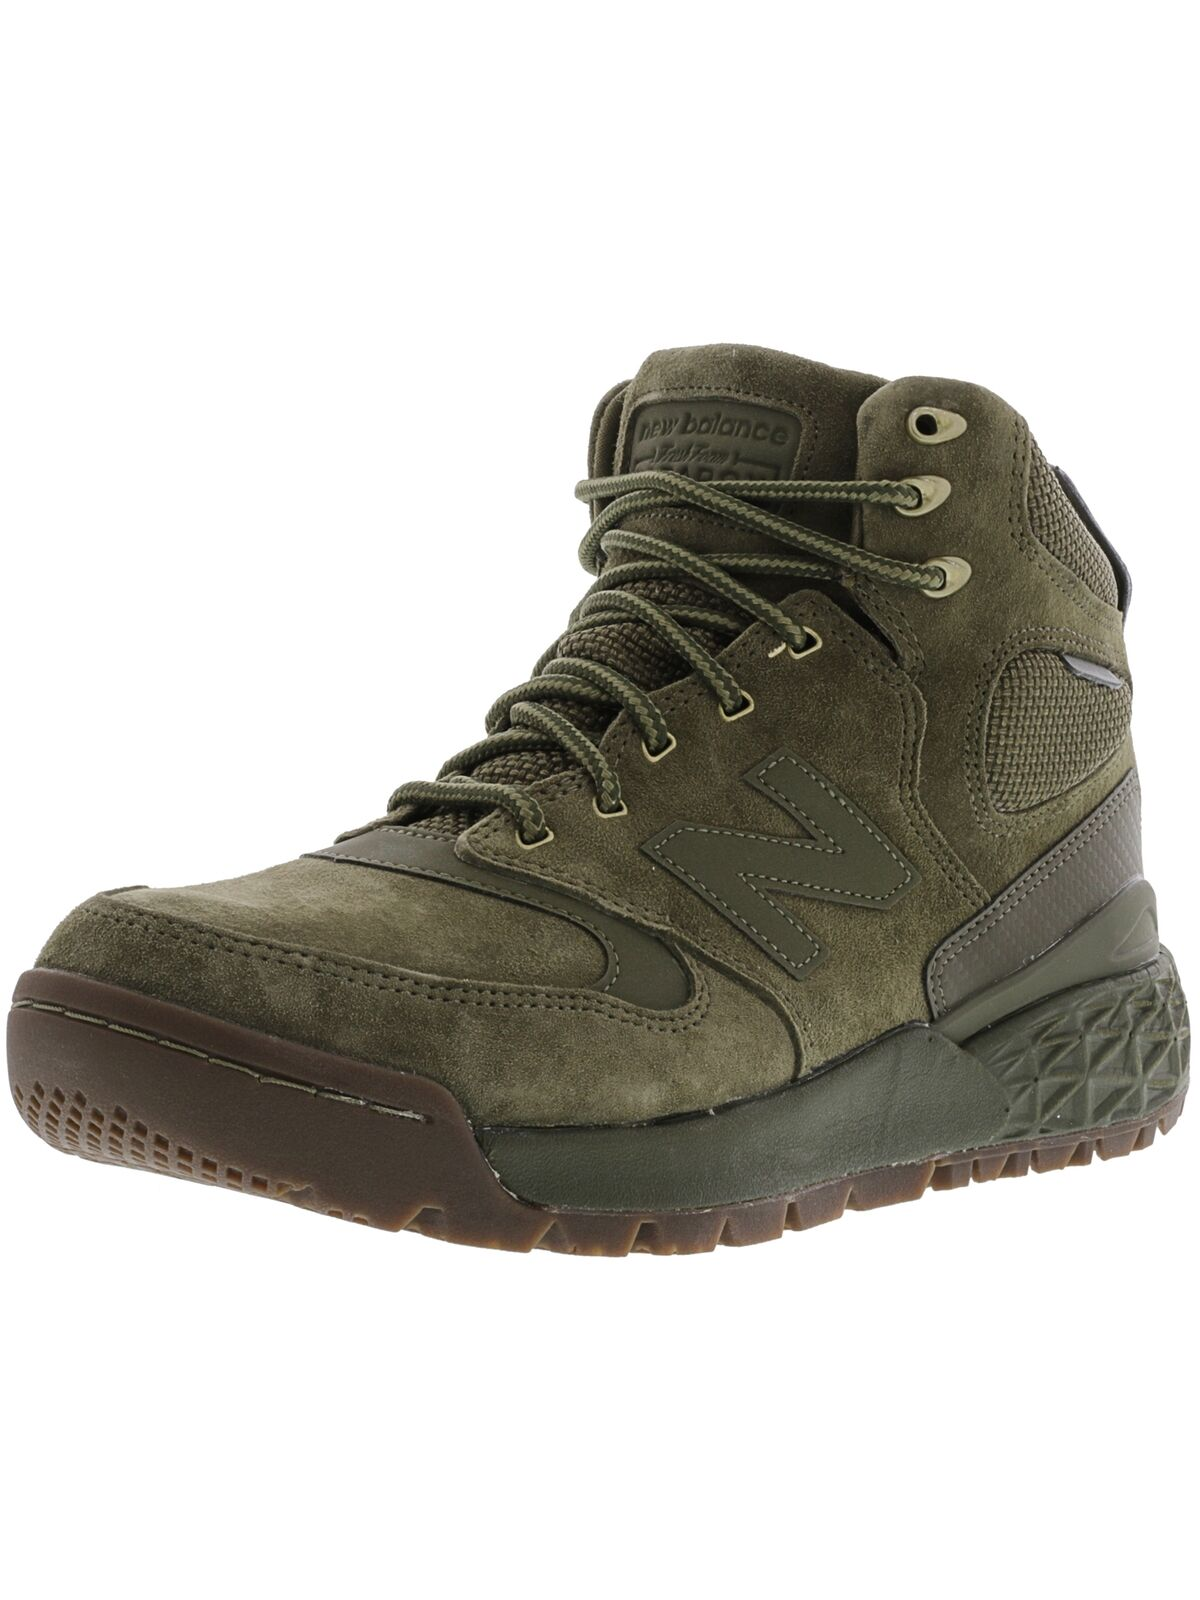 New Balance Men's Hflpx High-Top Suede Fashion Sneaker